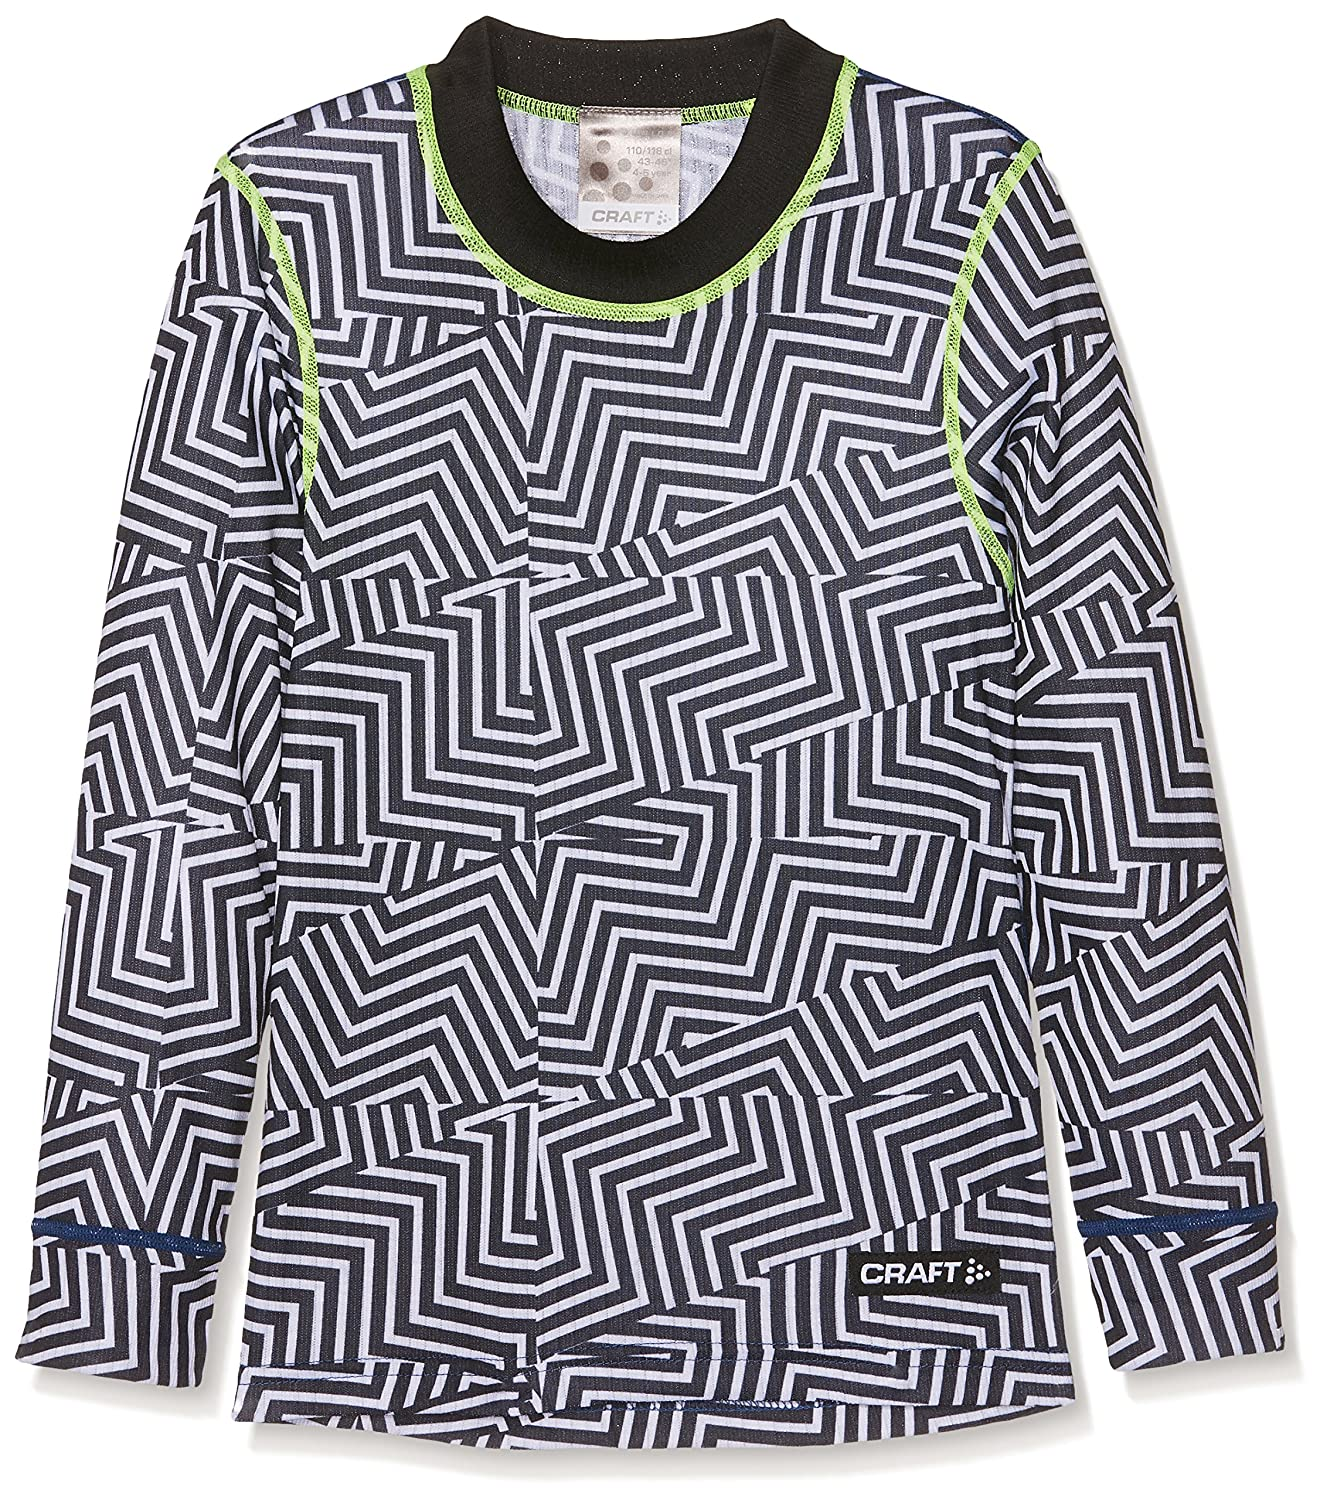 146//152 Black Craft Childrens Mix /& Match LS Junior P Maze Base Layer